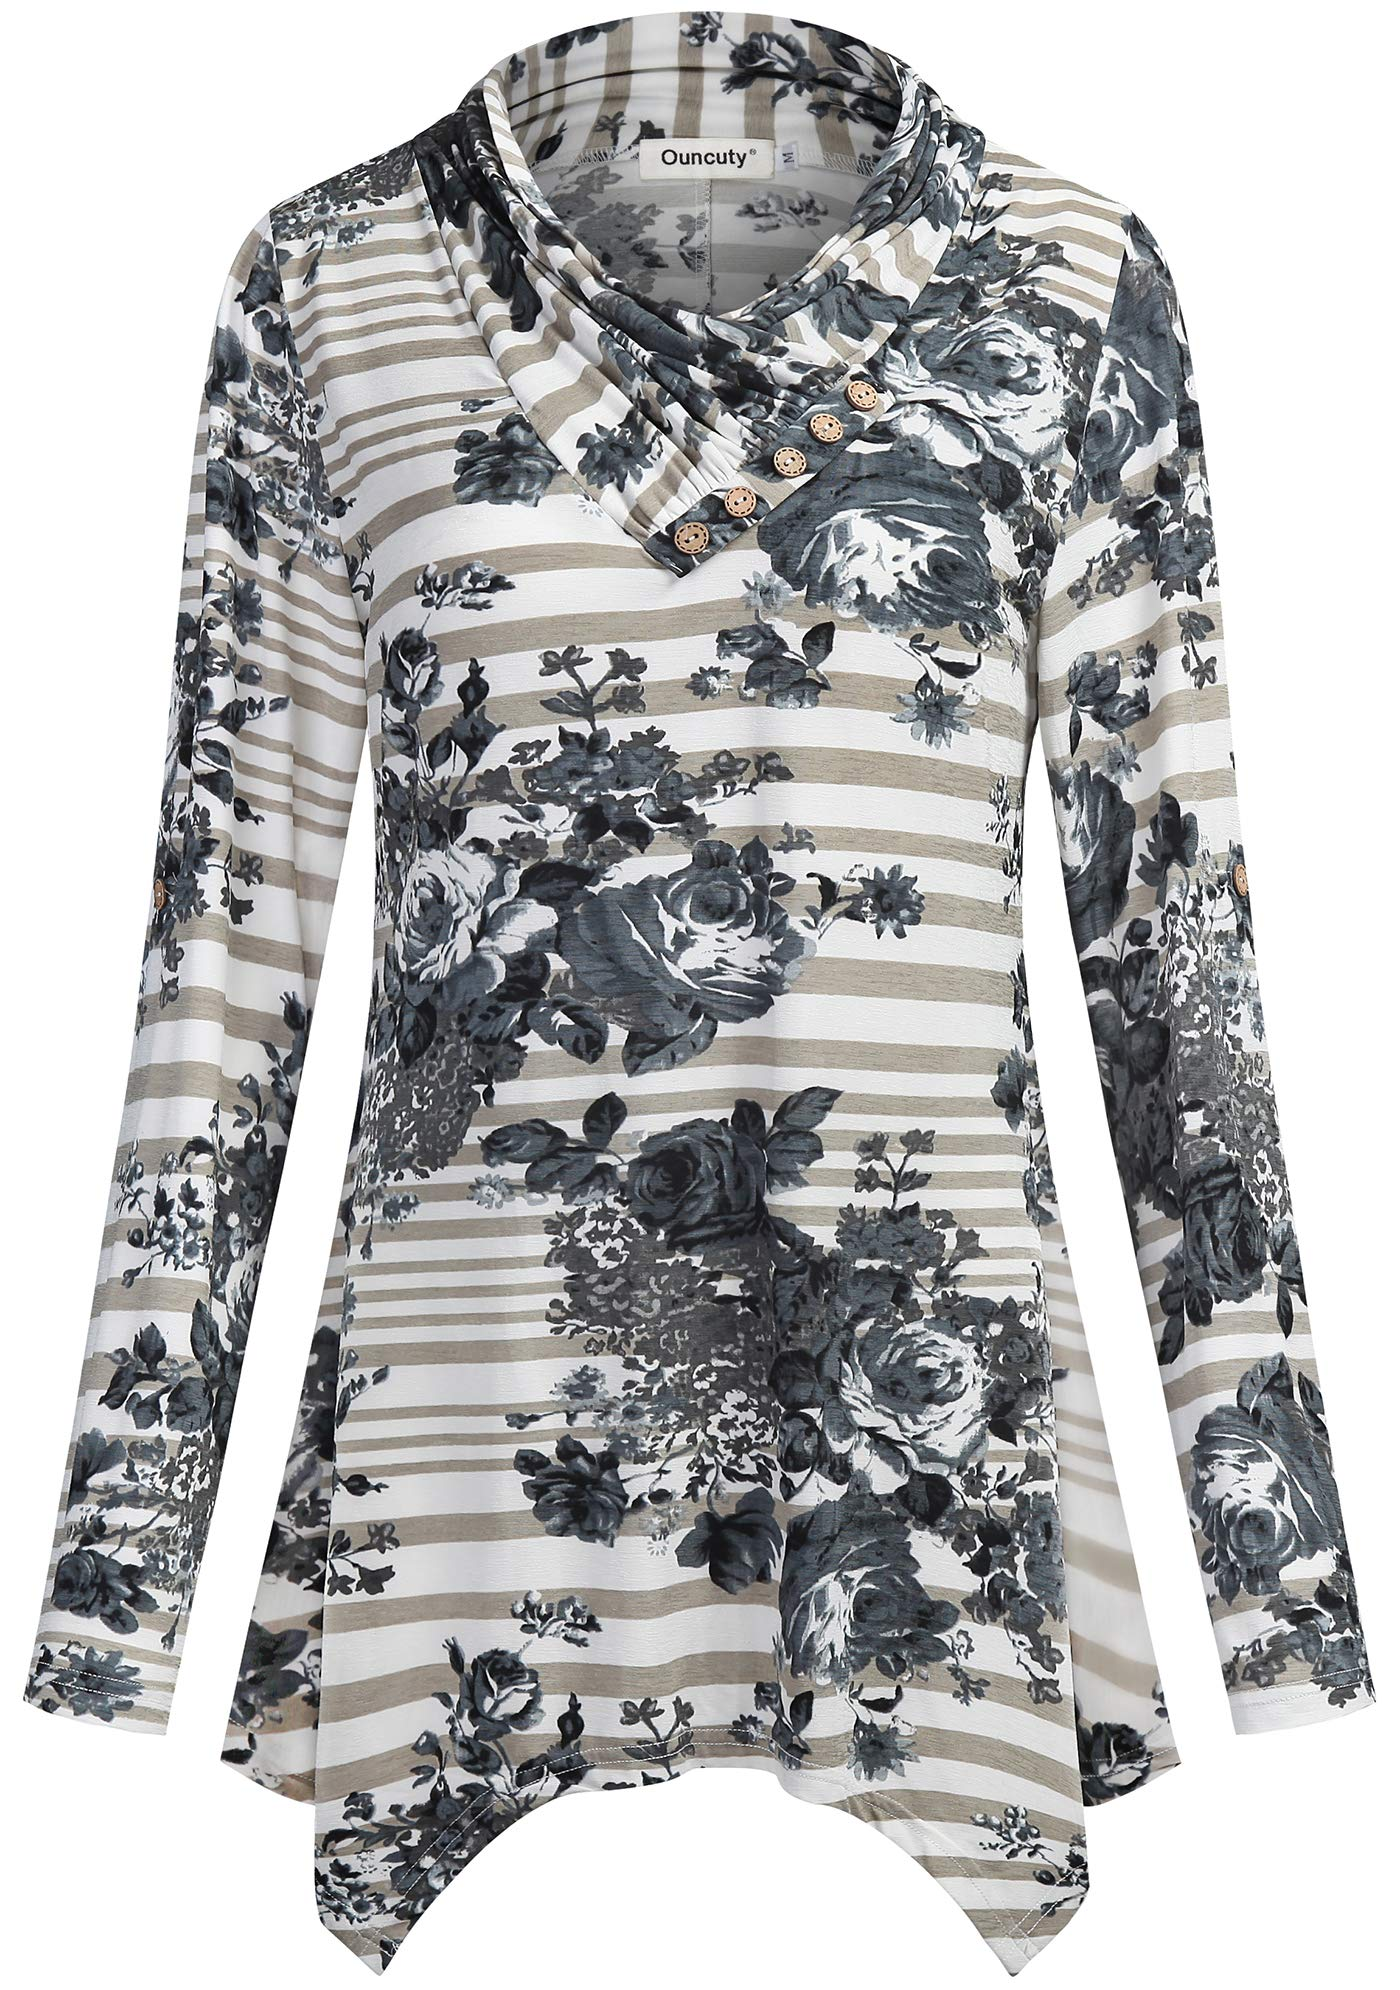 3c0f7fb11b987a Ouncuty Women Blouses Tops for Work,Female Classy Crossover Collared Floral  Ruched Fancy Paisley Space Dye Travel Clothing Flyaway Curve Hem Slim Fit  Tunics ...